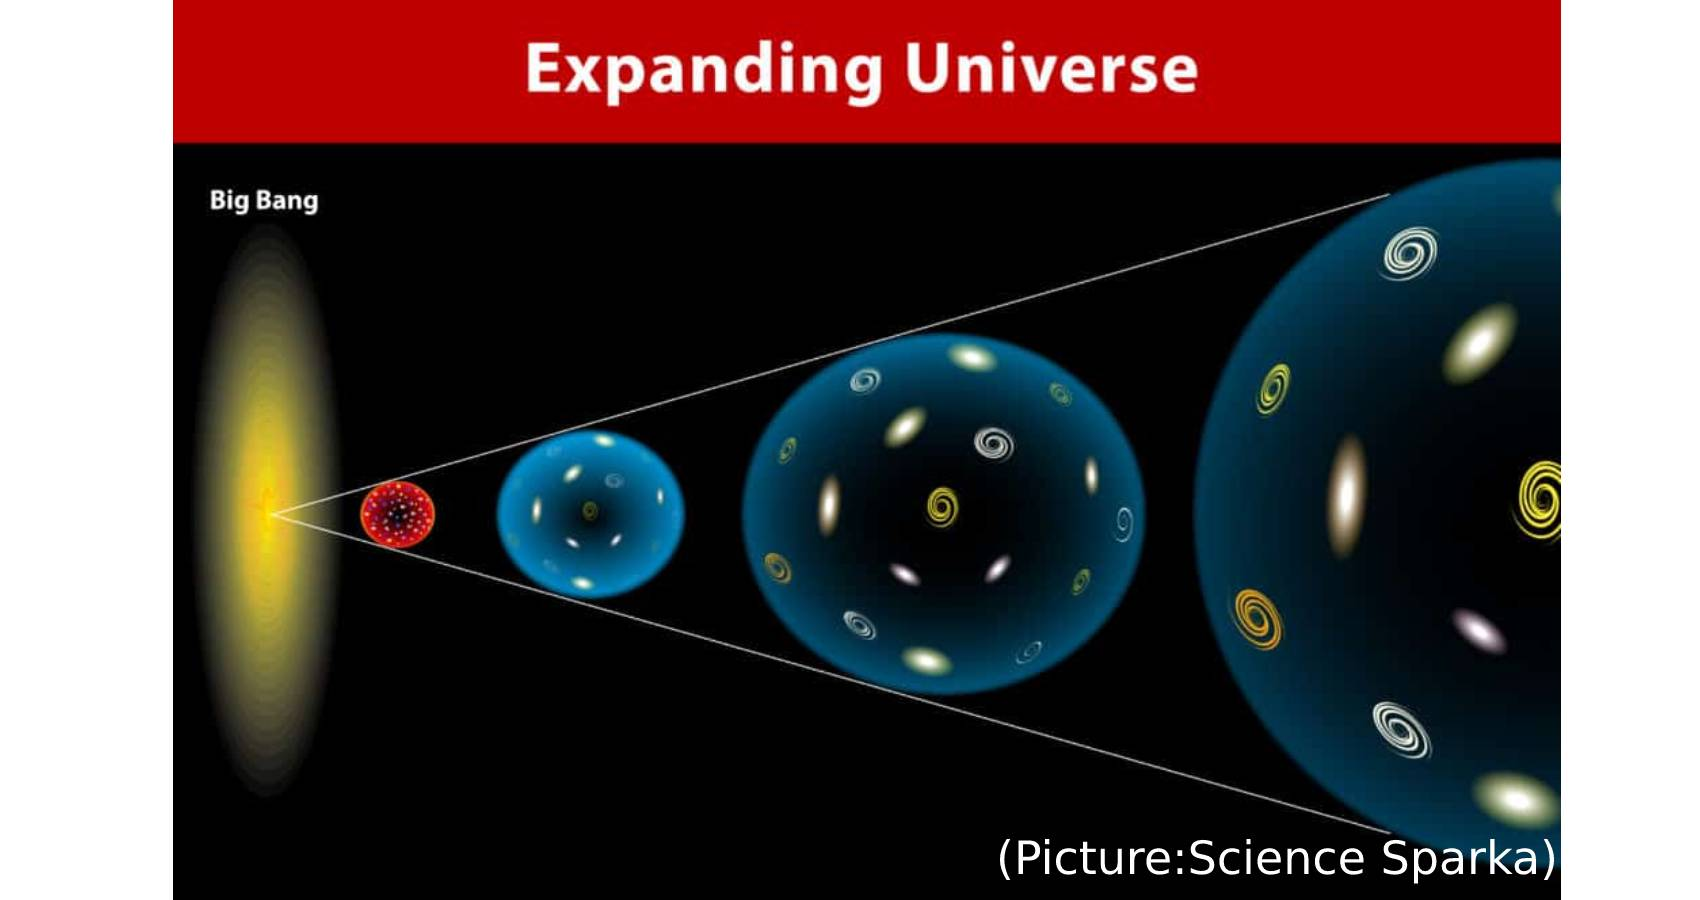 Does The Universe Expand?